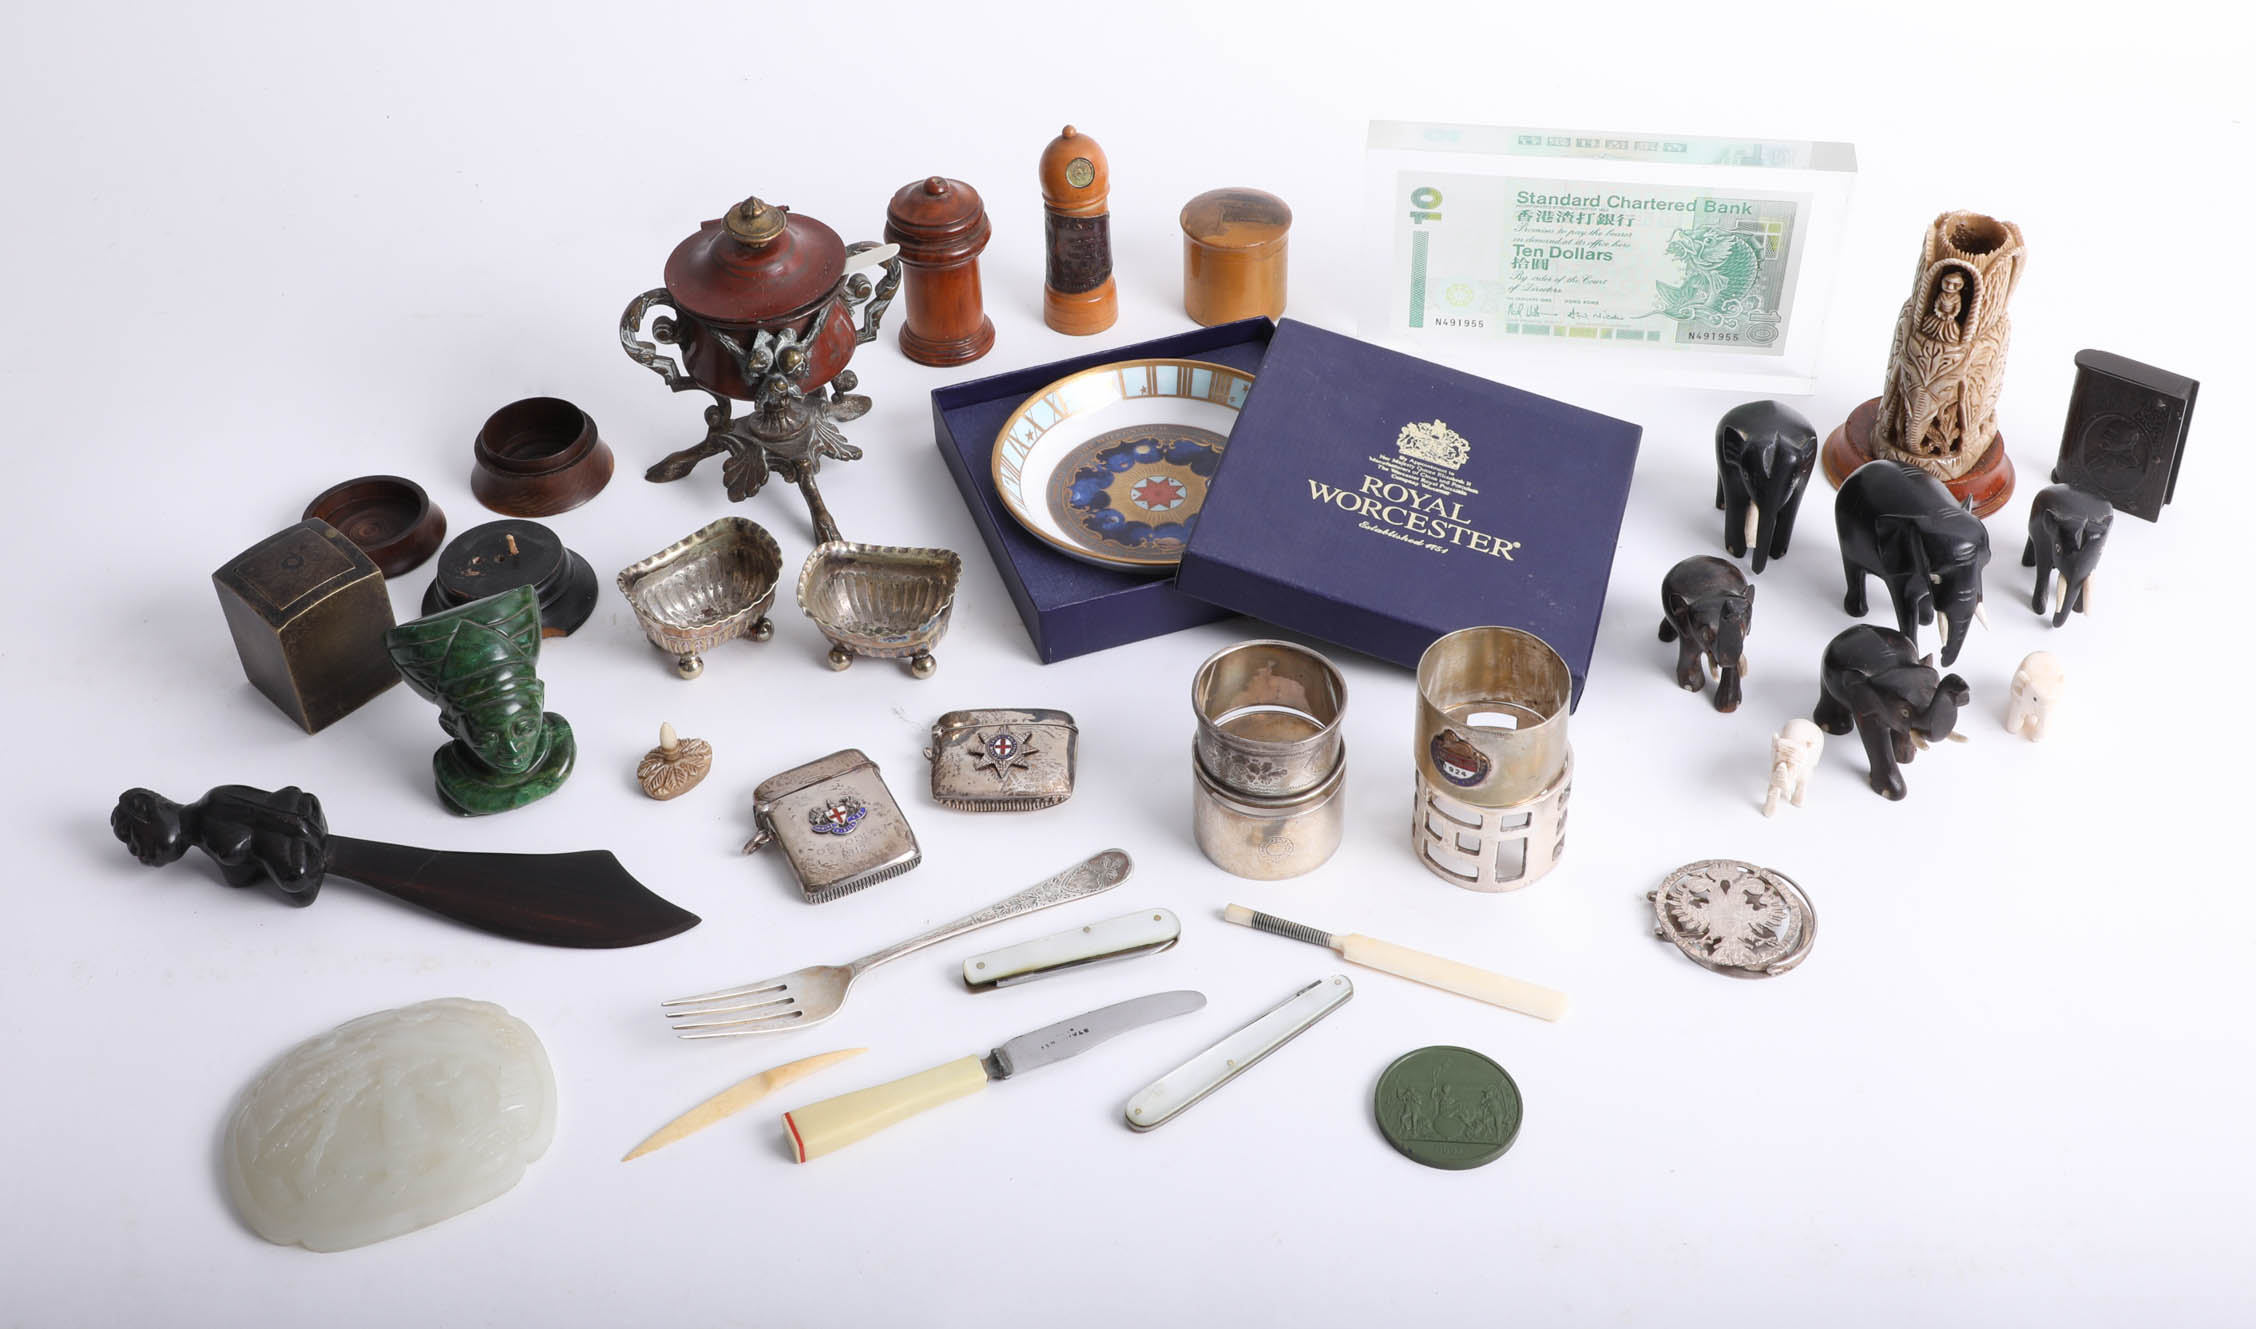 Lot 008 - Interesting collection of objects including wood ware, EP salts, Malachite type paperweight,